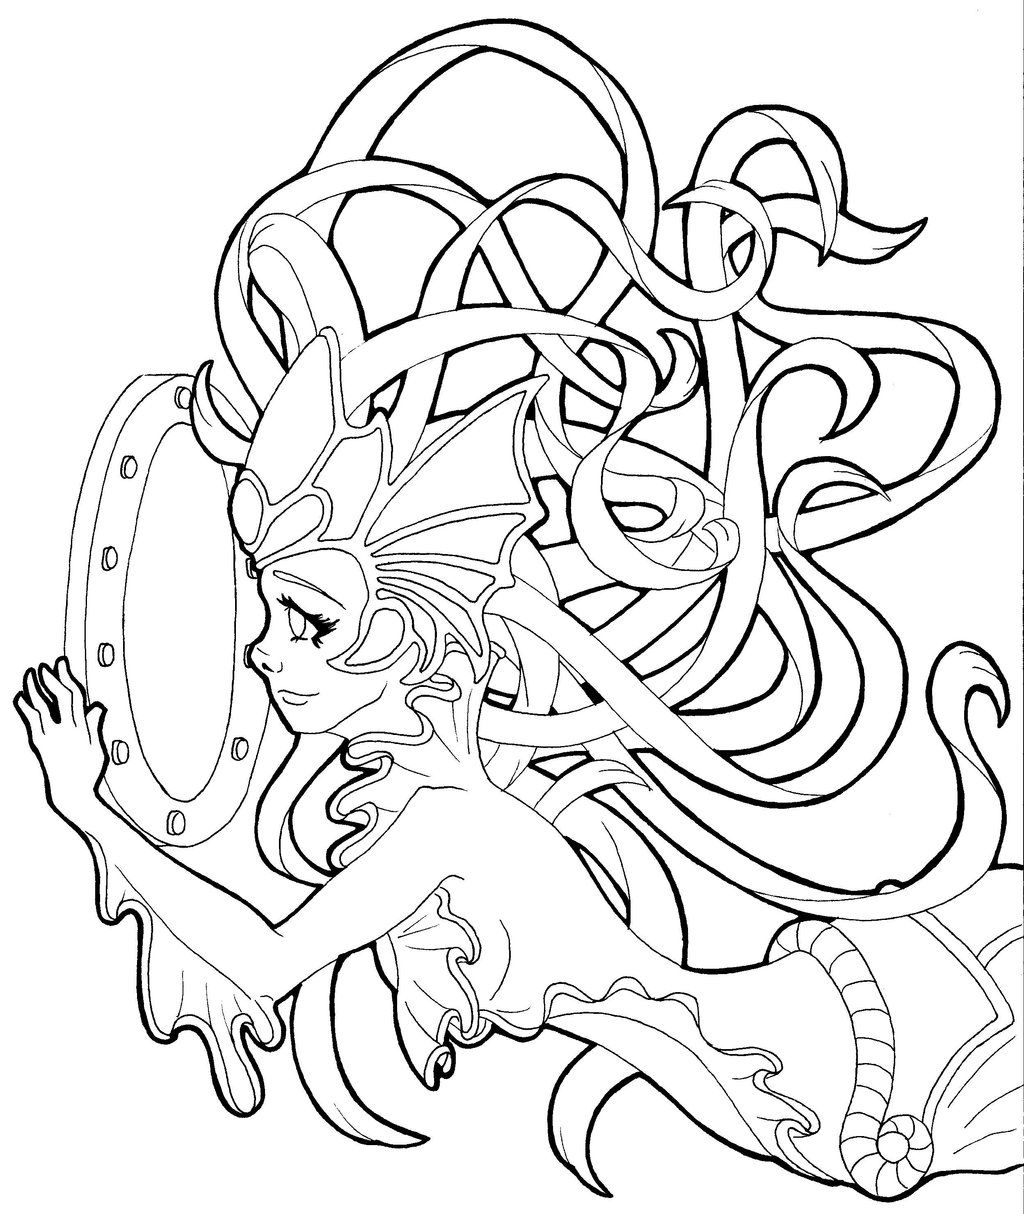 Pin by Amy Young on Coloring pages | Pinterest | deviantART, Geek ...